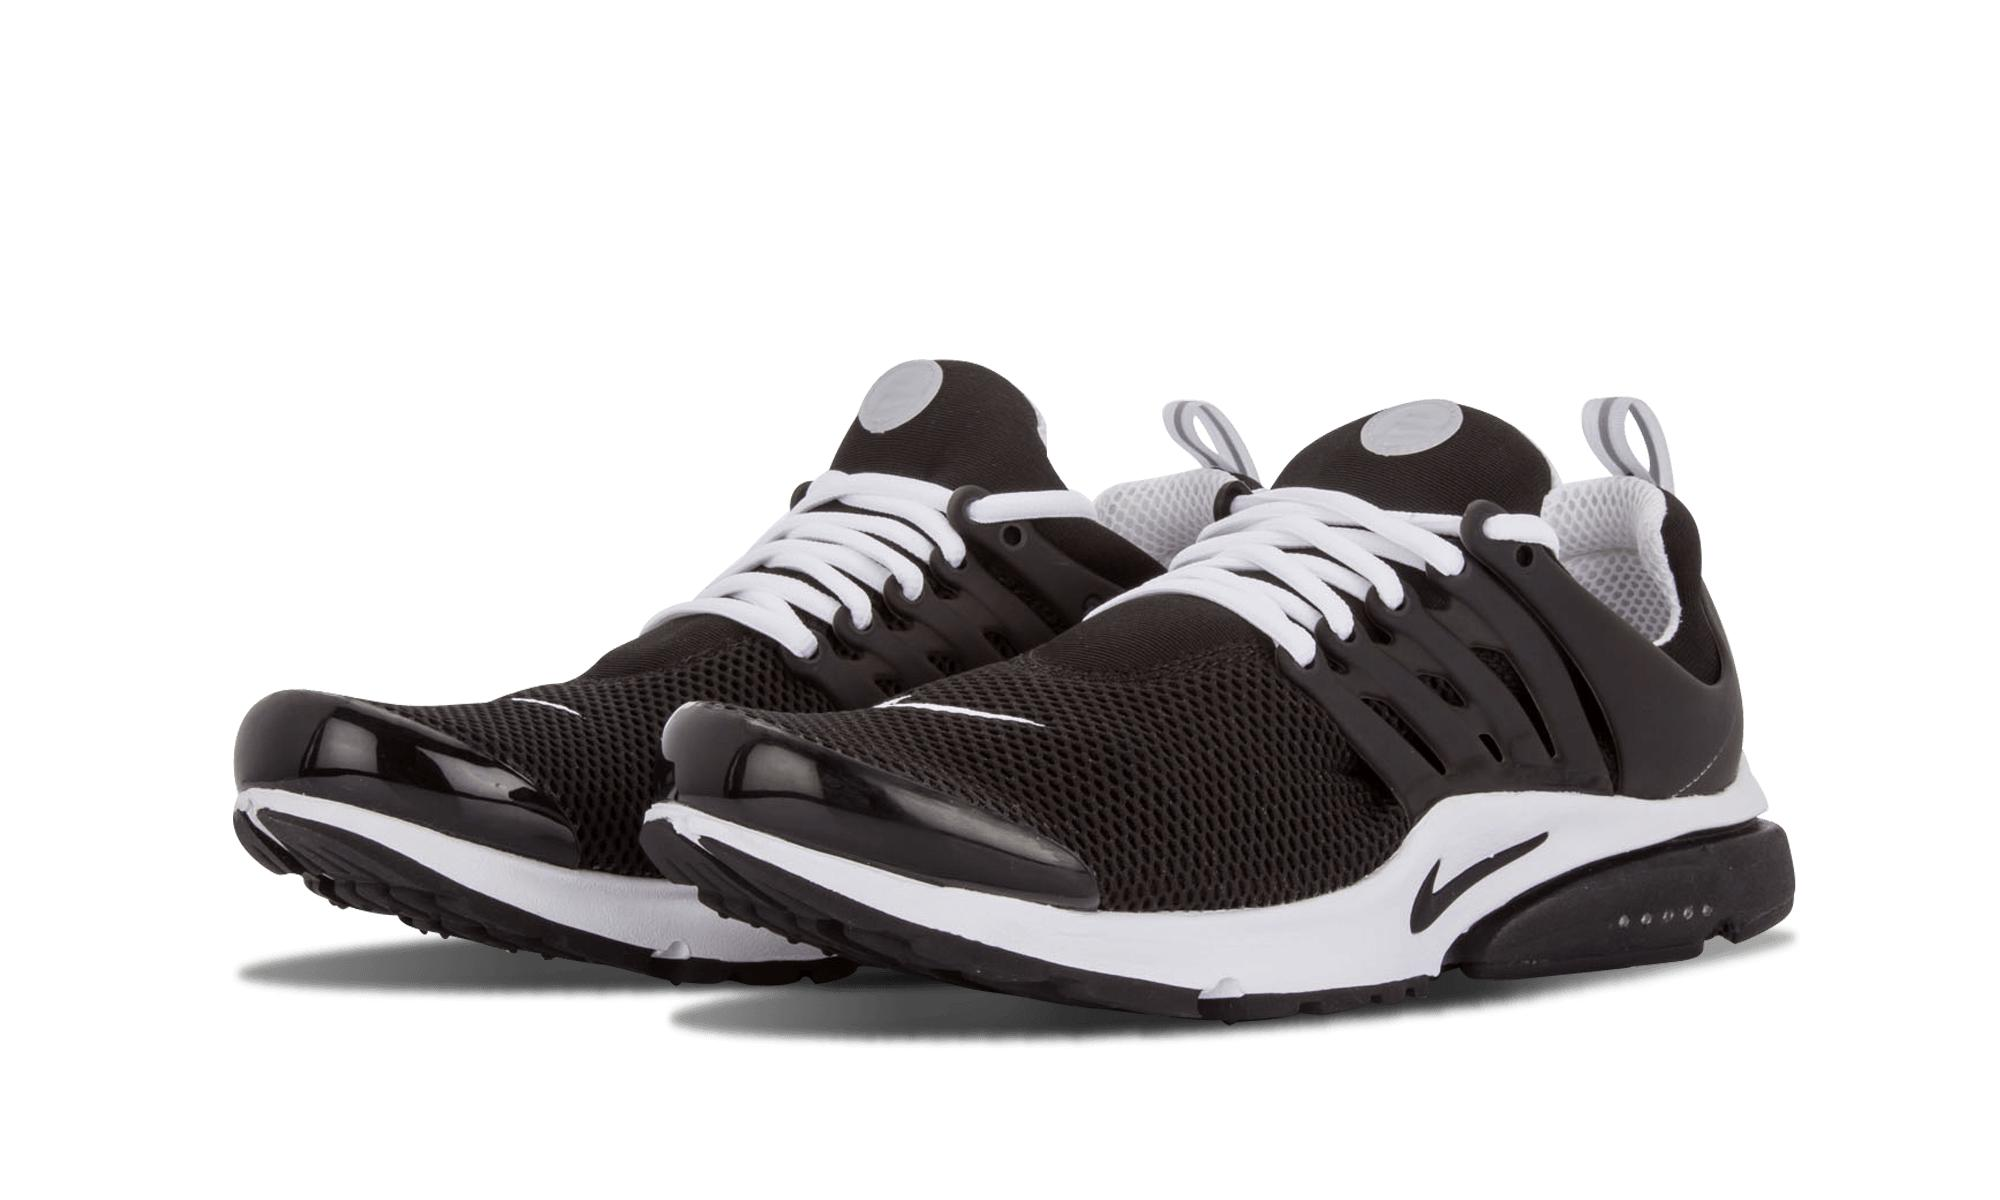 87dde1408e29 Nike - Black Air Presto Br Qs for Men - Lyst. View fullscreen